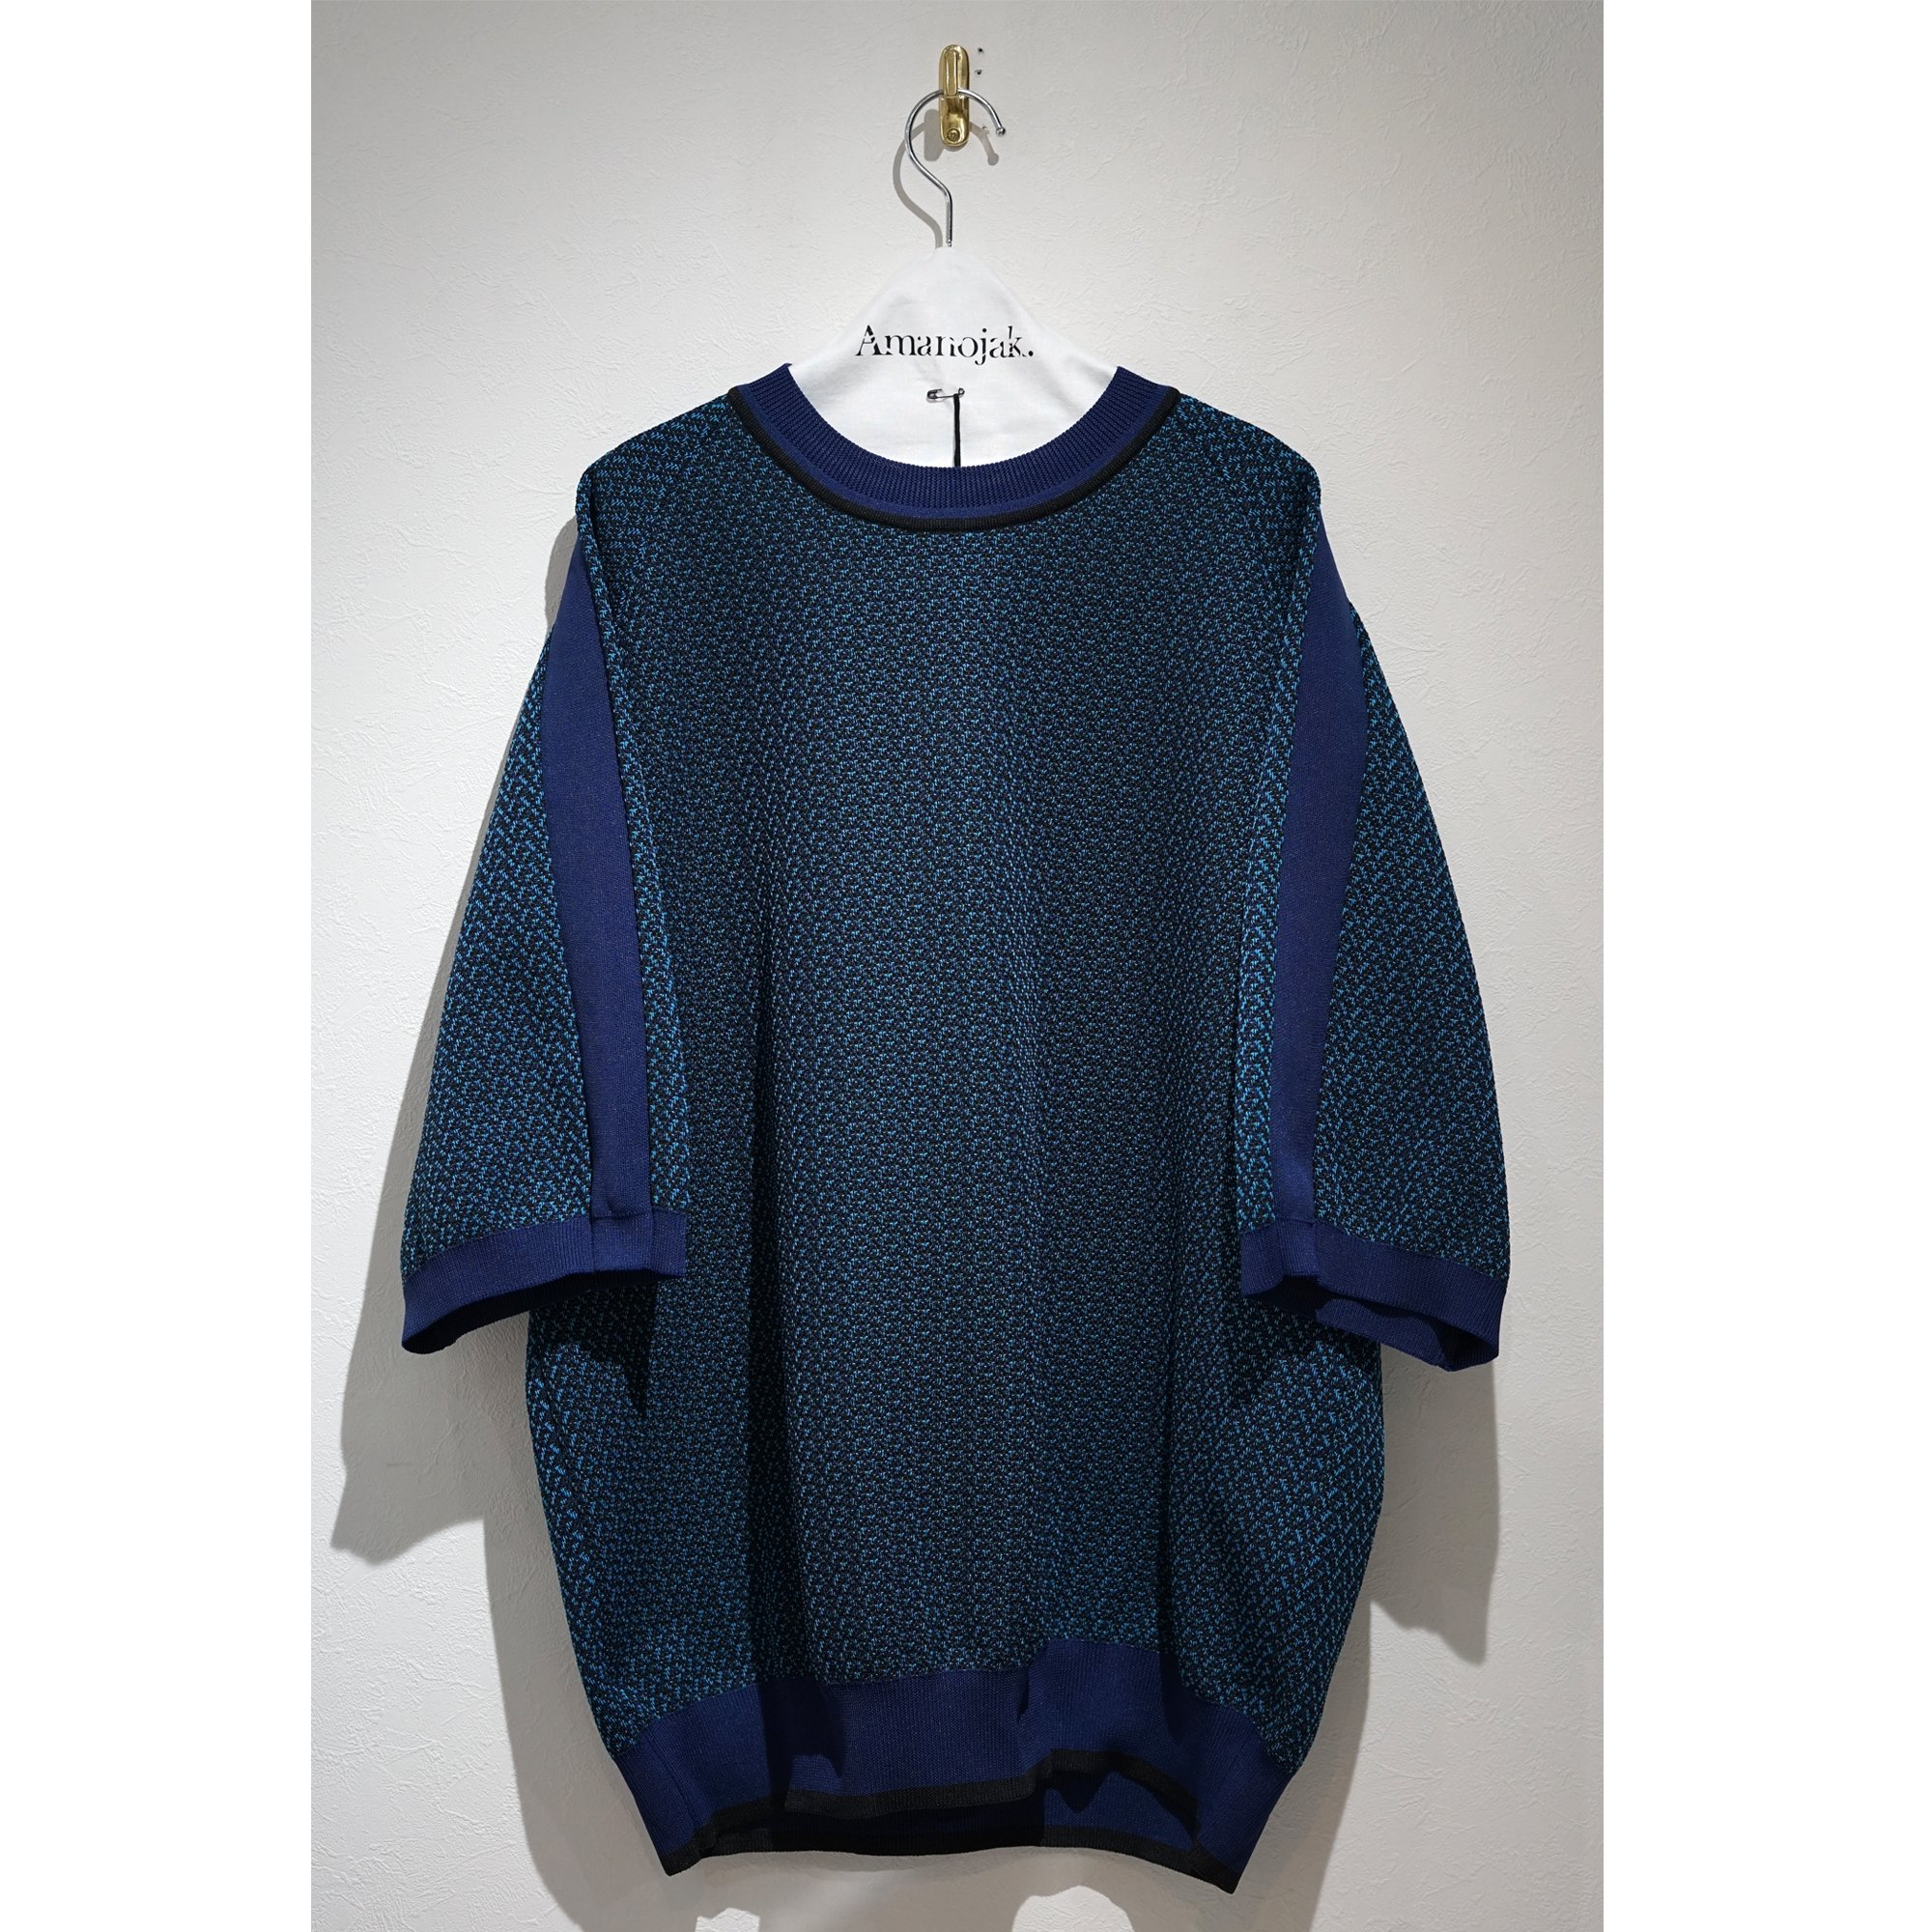 08sircus-POLYESTER JACQUARD KNIT  SHORT SLEEVE BLUE